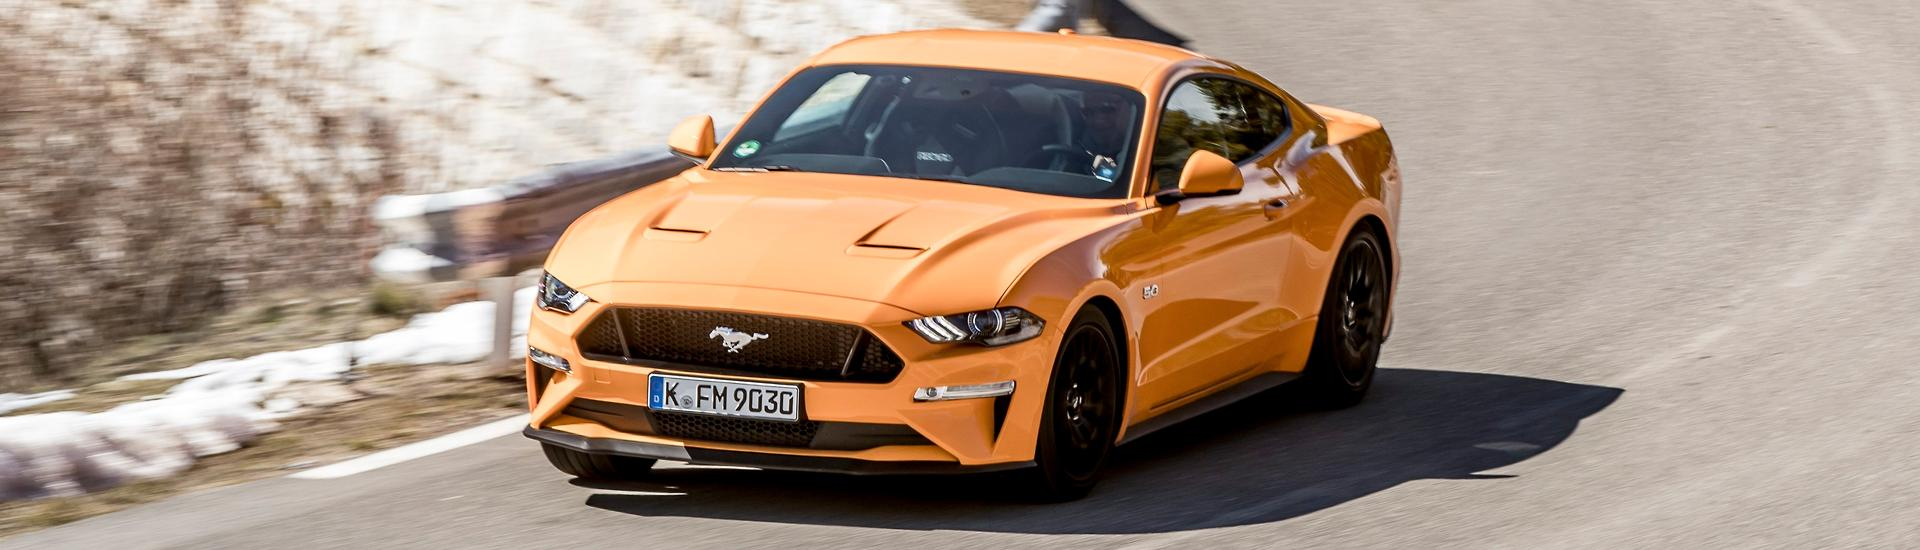 New Ford Cars For Sale In Australia Carsales Com Au